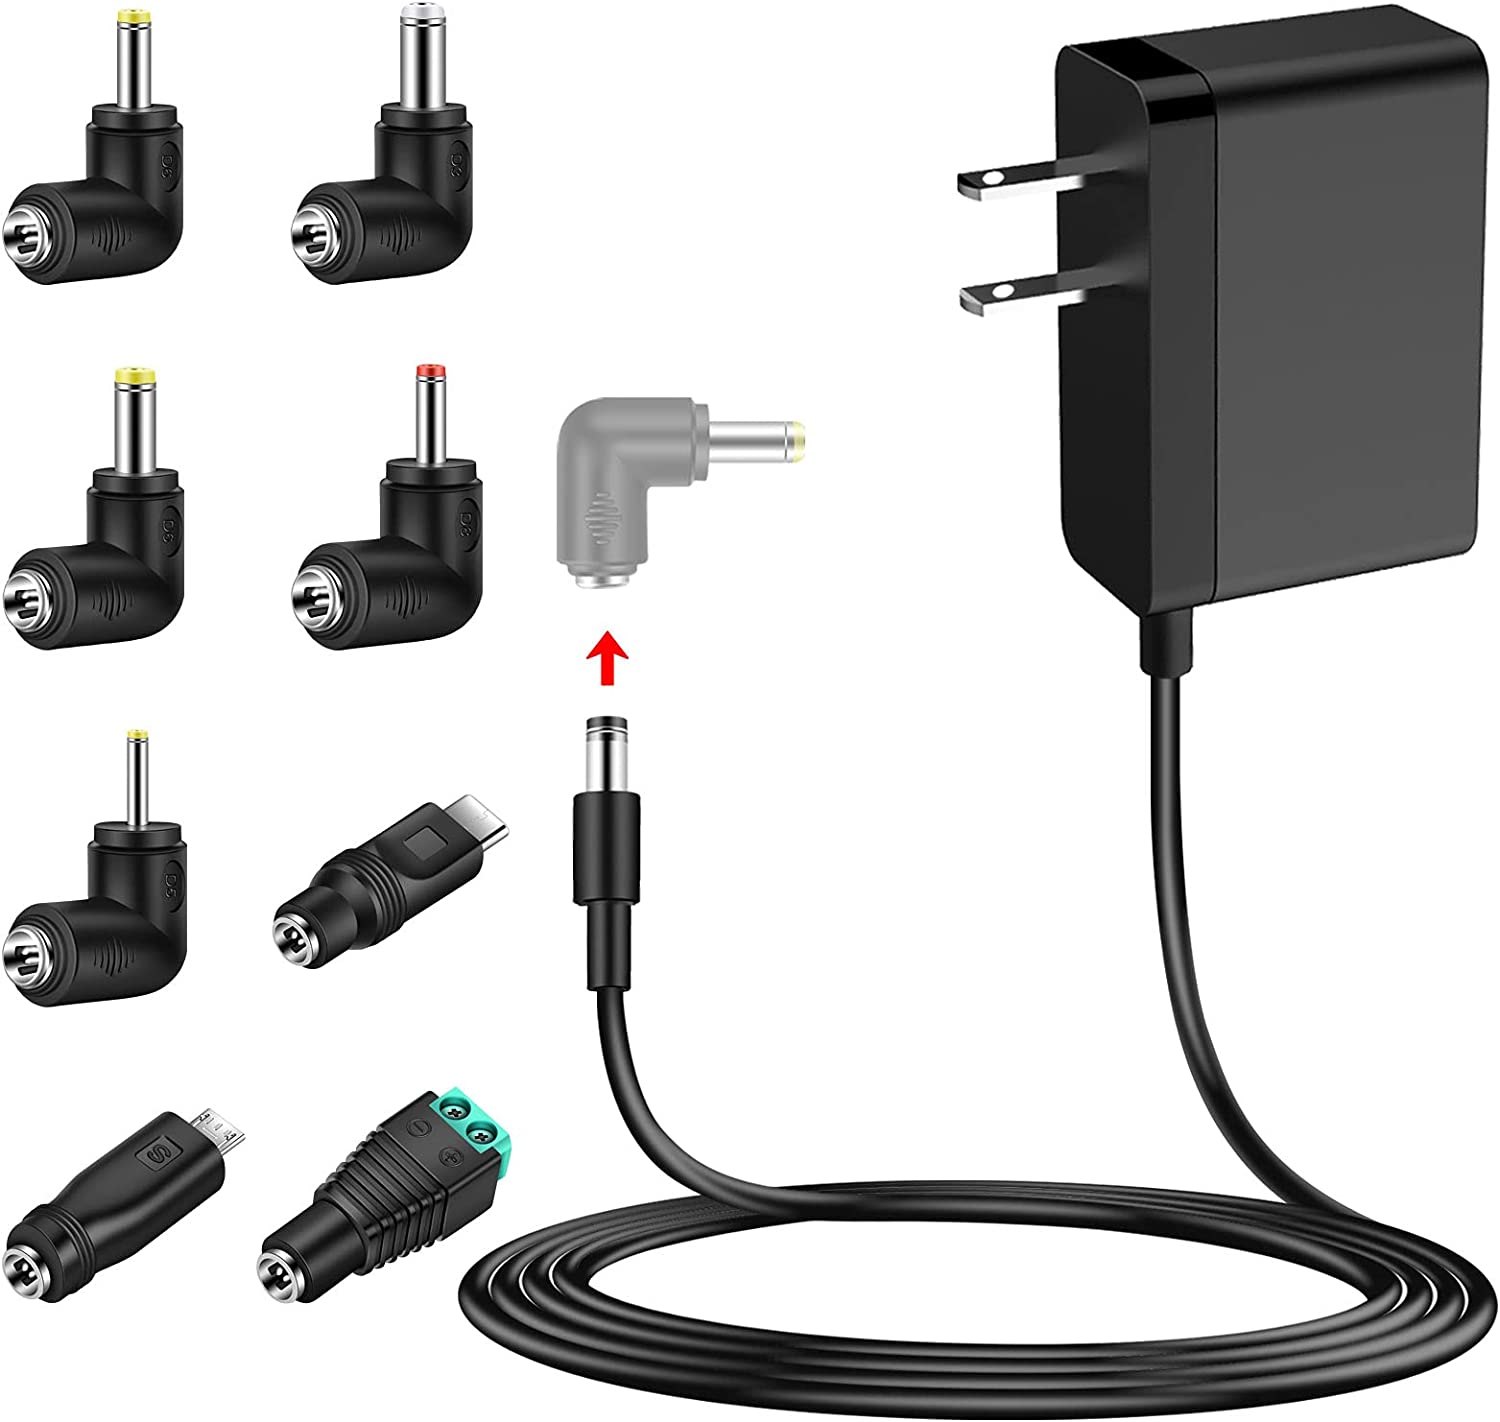 MEROM Willow Pump Breast Pump Charger 5V 3A Power Cord Adapter Compatible with Willow Pump Generations 1, 2, and 3 Replacement